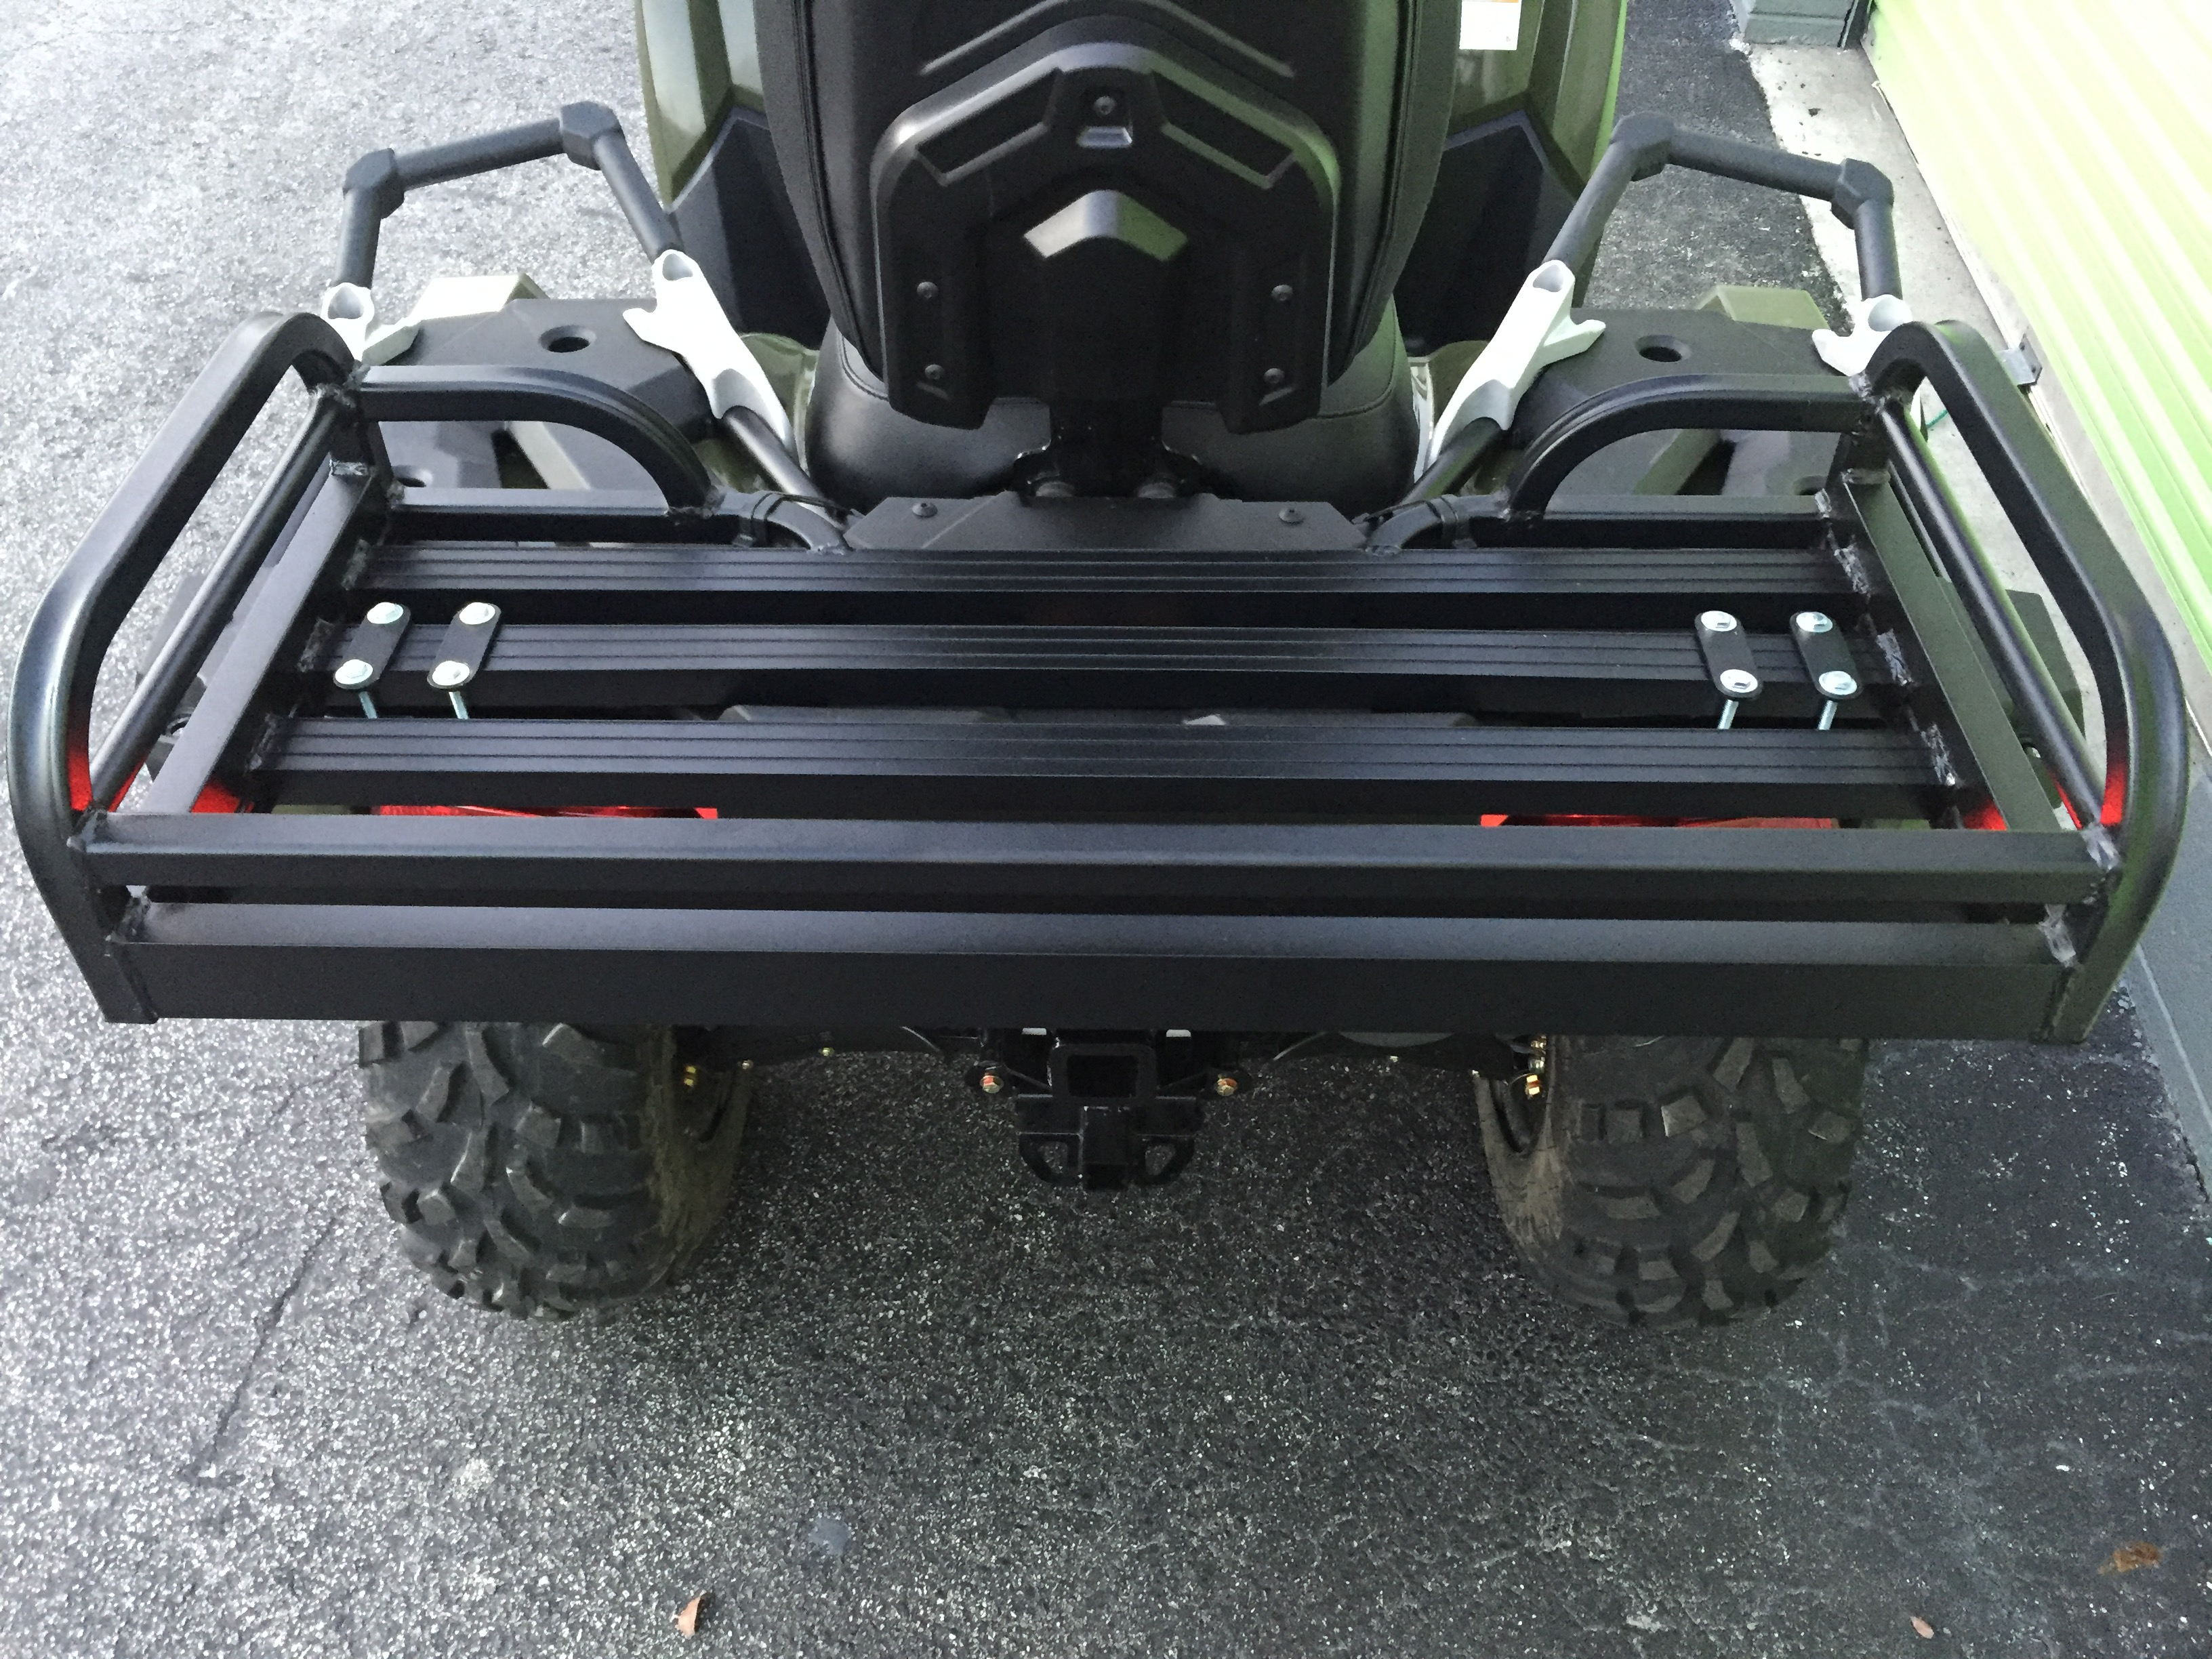 Polaris Atv For Sale >> Polaris ATV Forum - View Single Post - 570 Sportsman ...